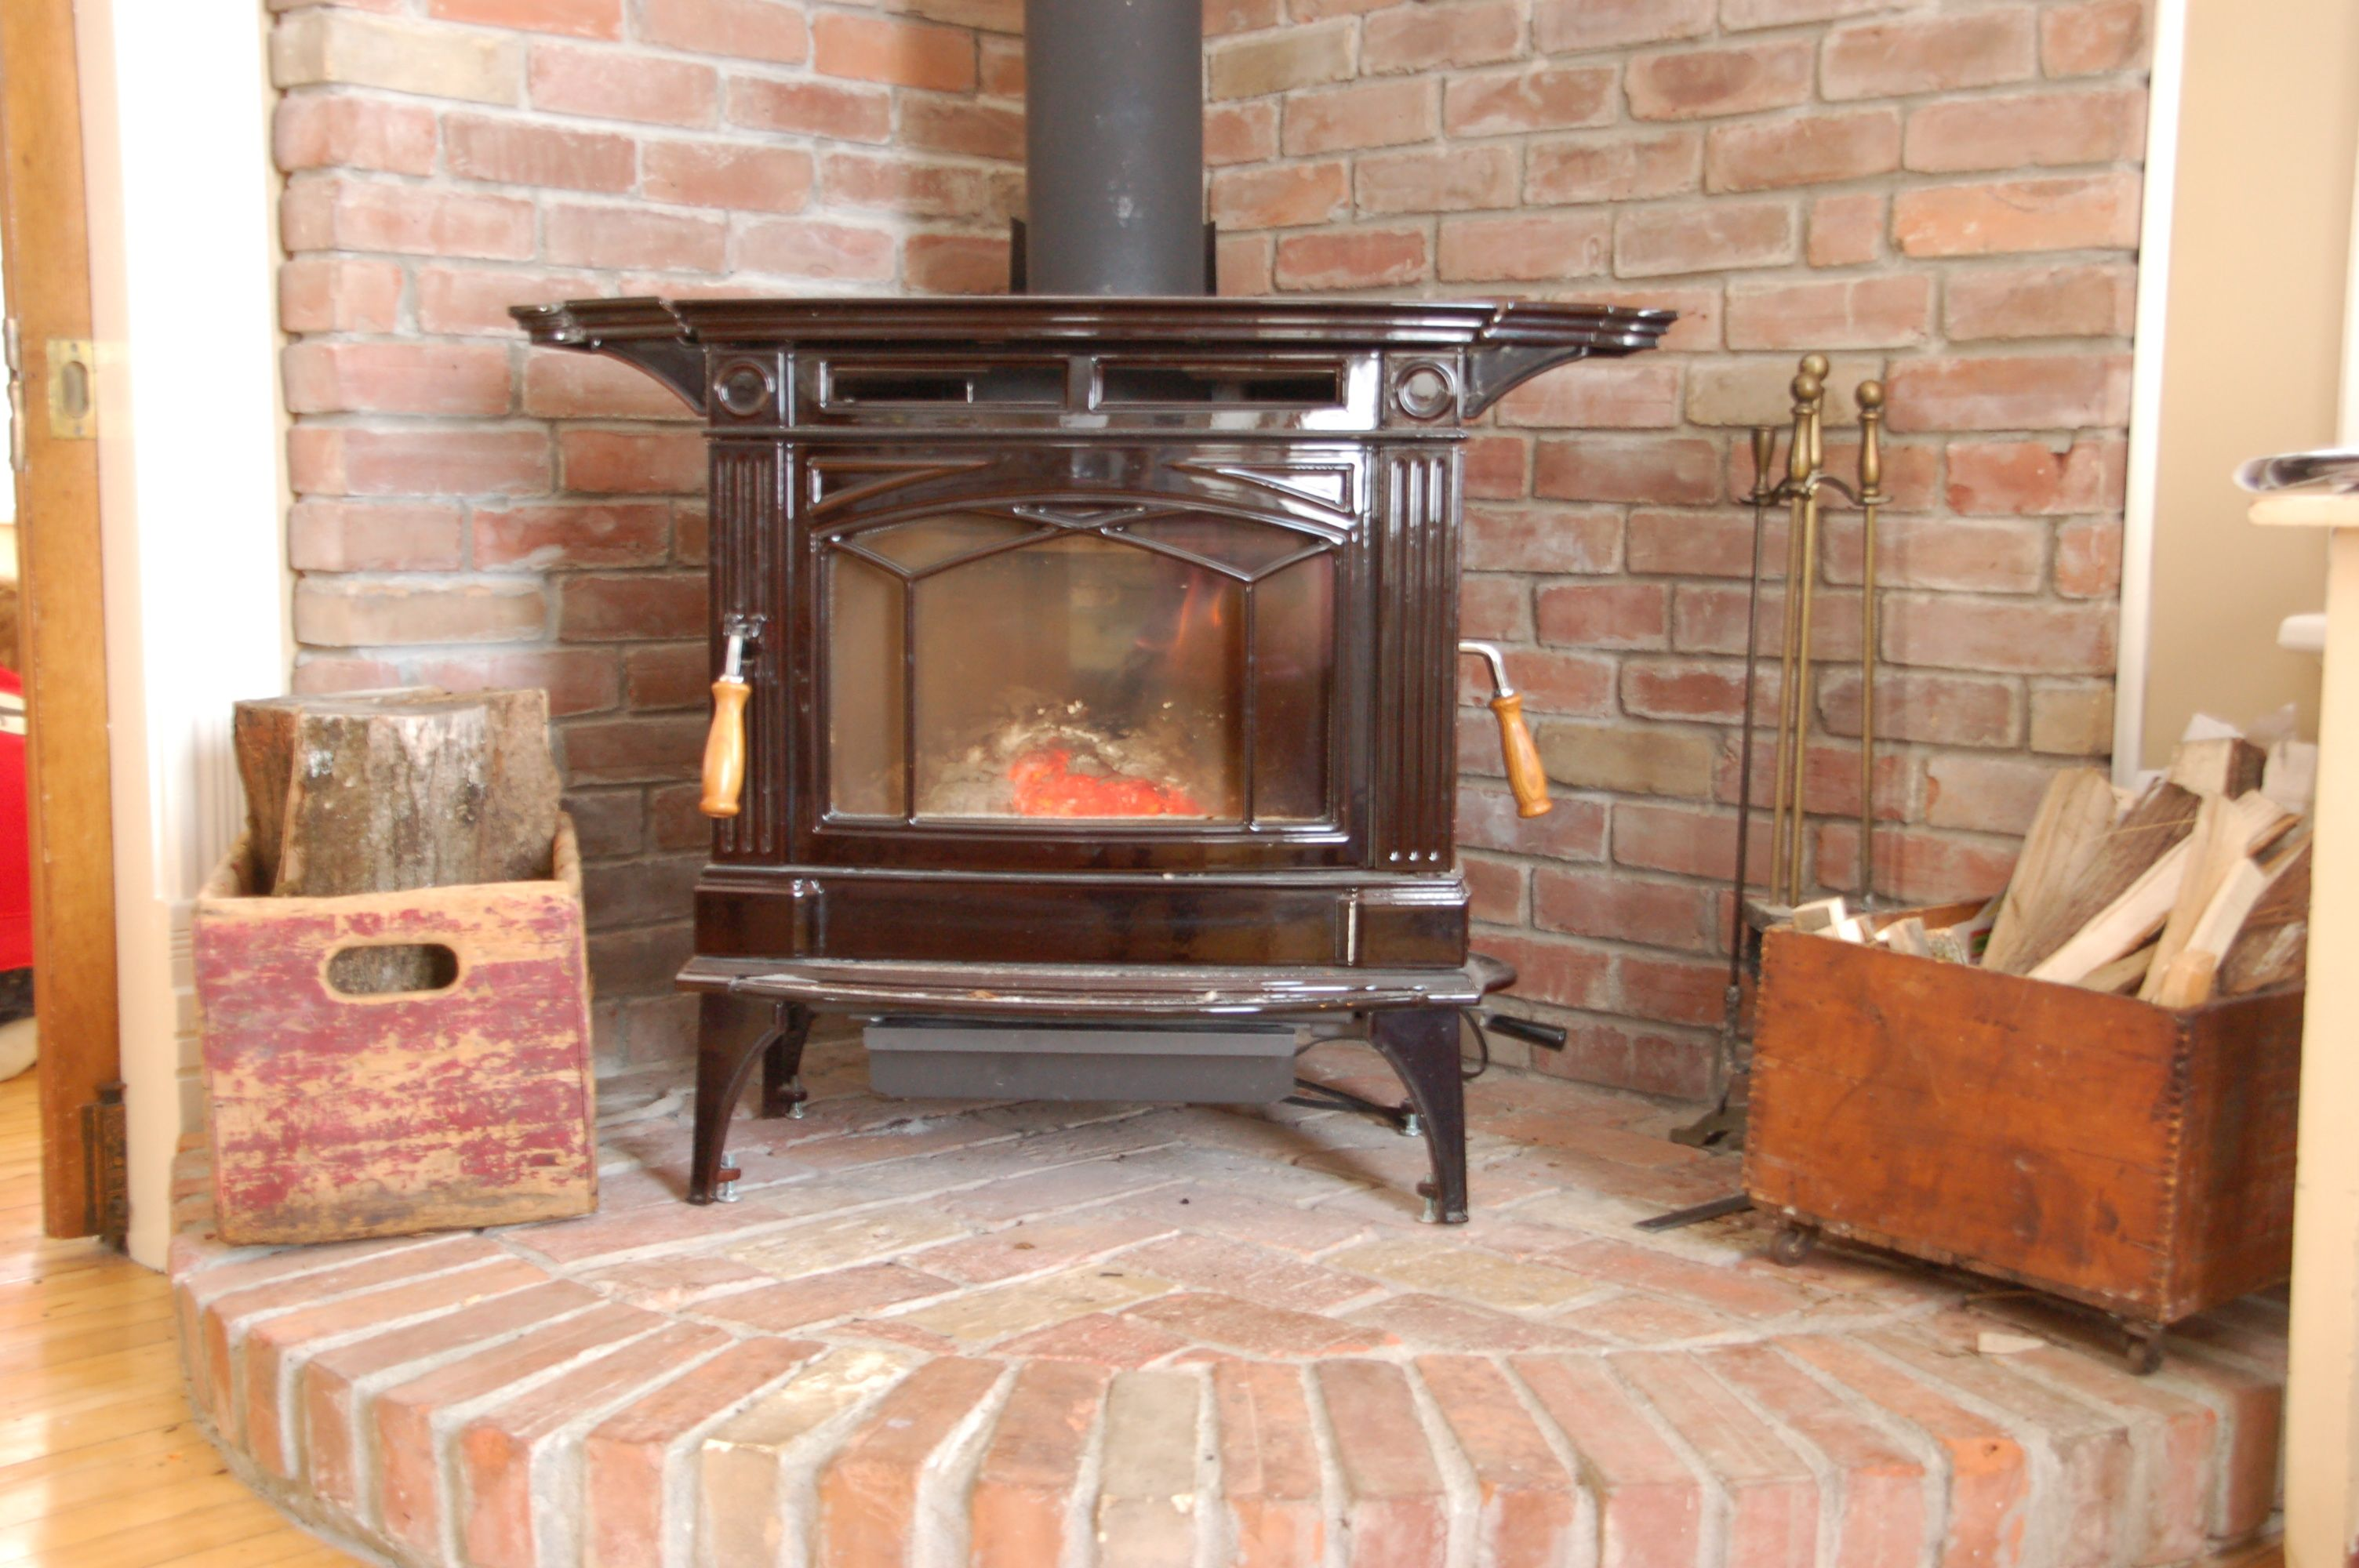 Wood Stove With Brick Hearth For Corner Of Living Room.